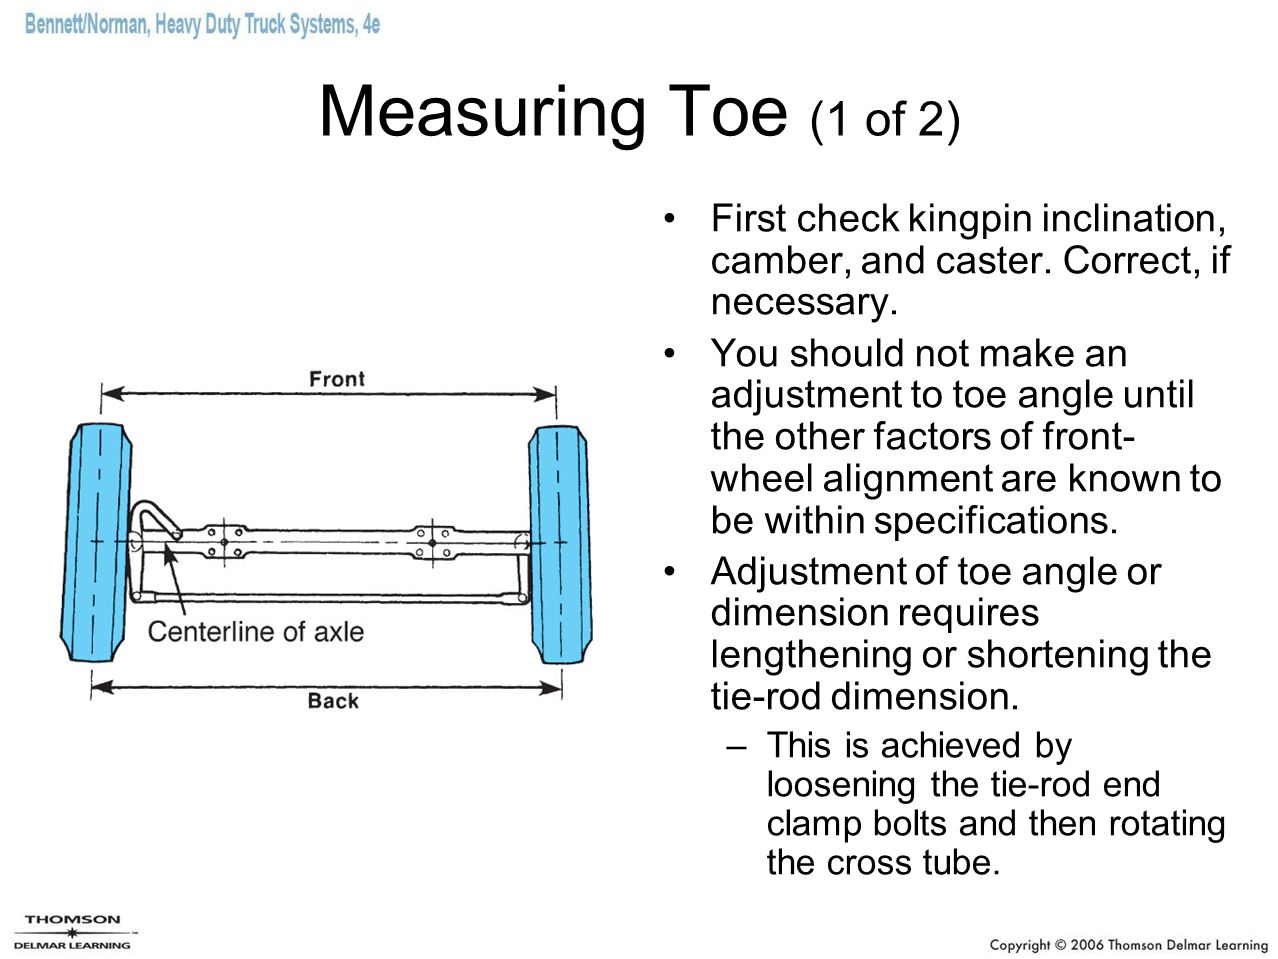 Measuring Toe (1 of 2) First check kingpin inclination, camber, and caster. Correct, if necessary.